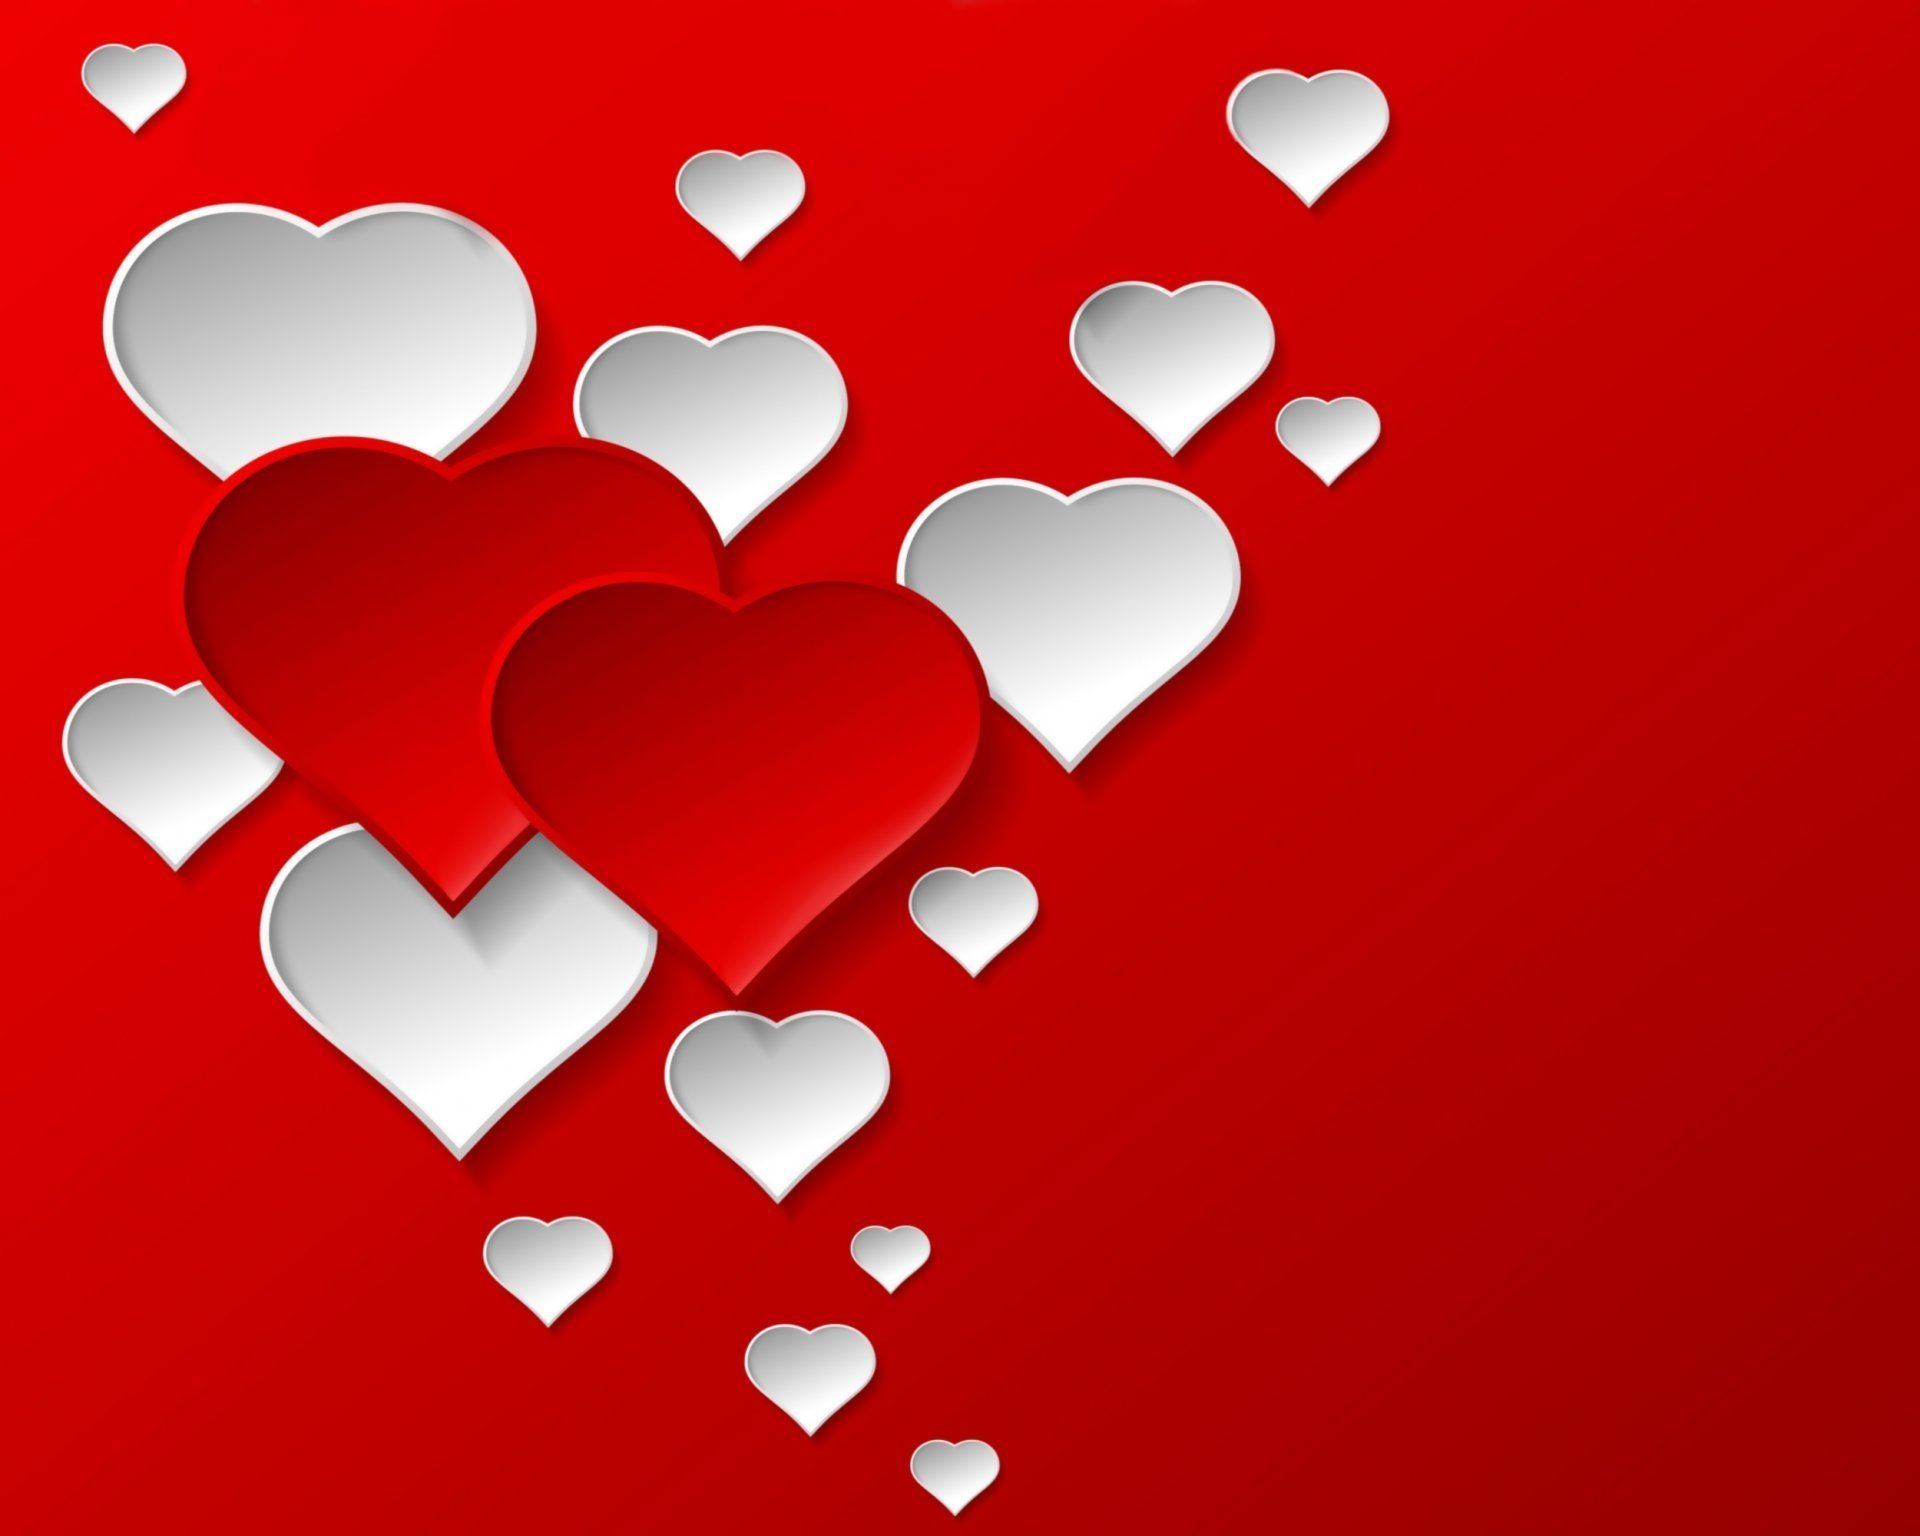 Red And White Hearts Fondo De Pantalla Hd Fondo De